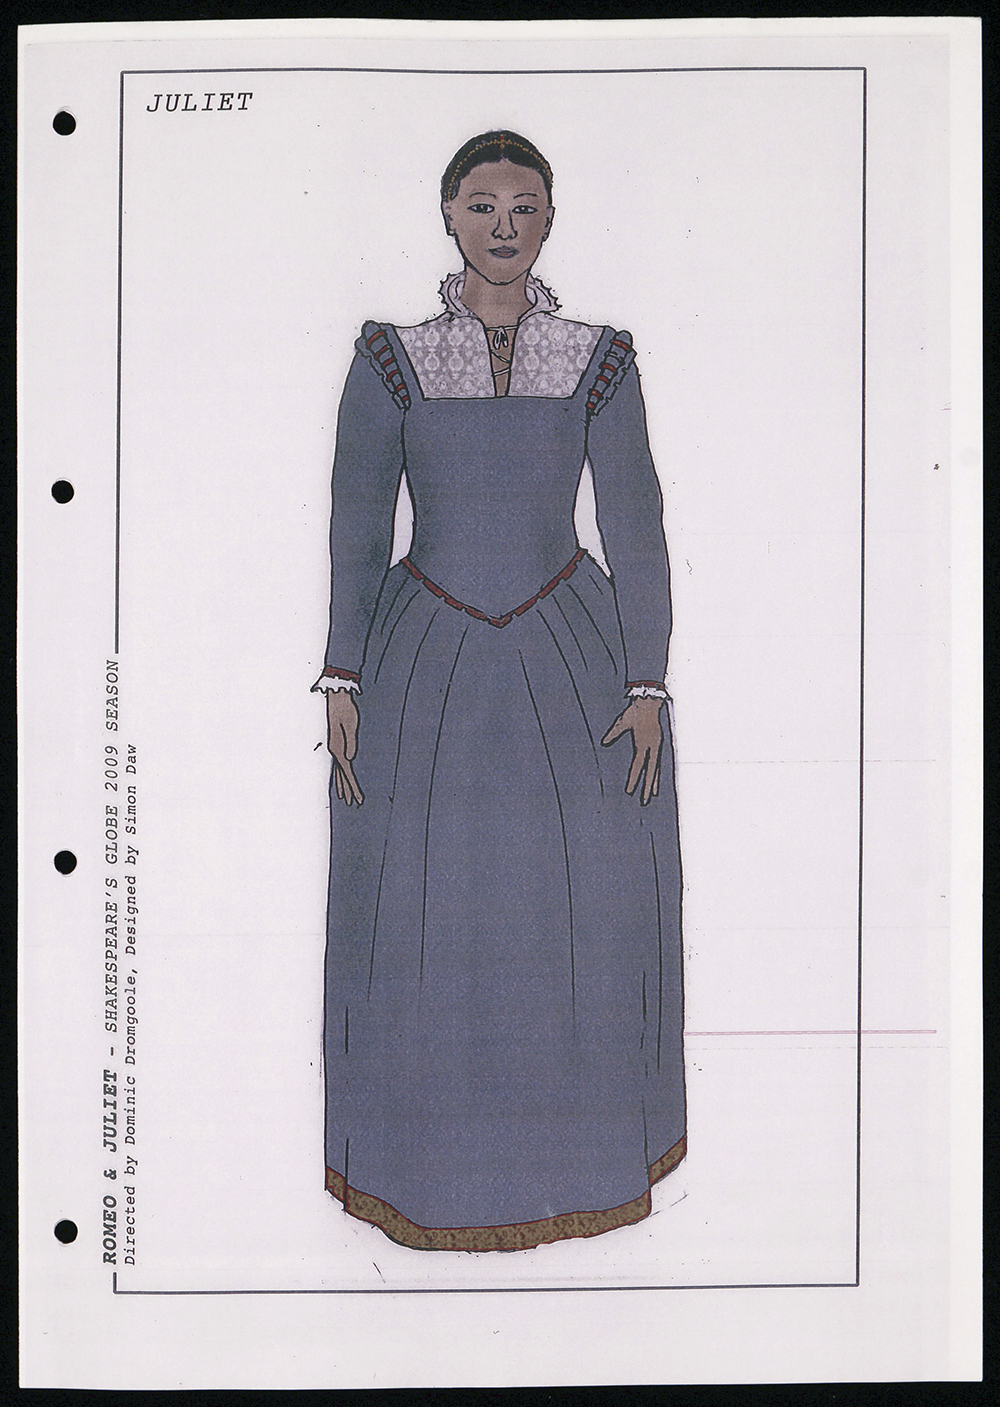 A costume sketch for Juliet with a high necked blue corset dress.